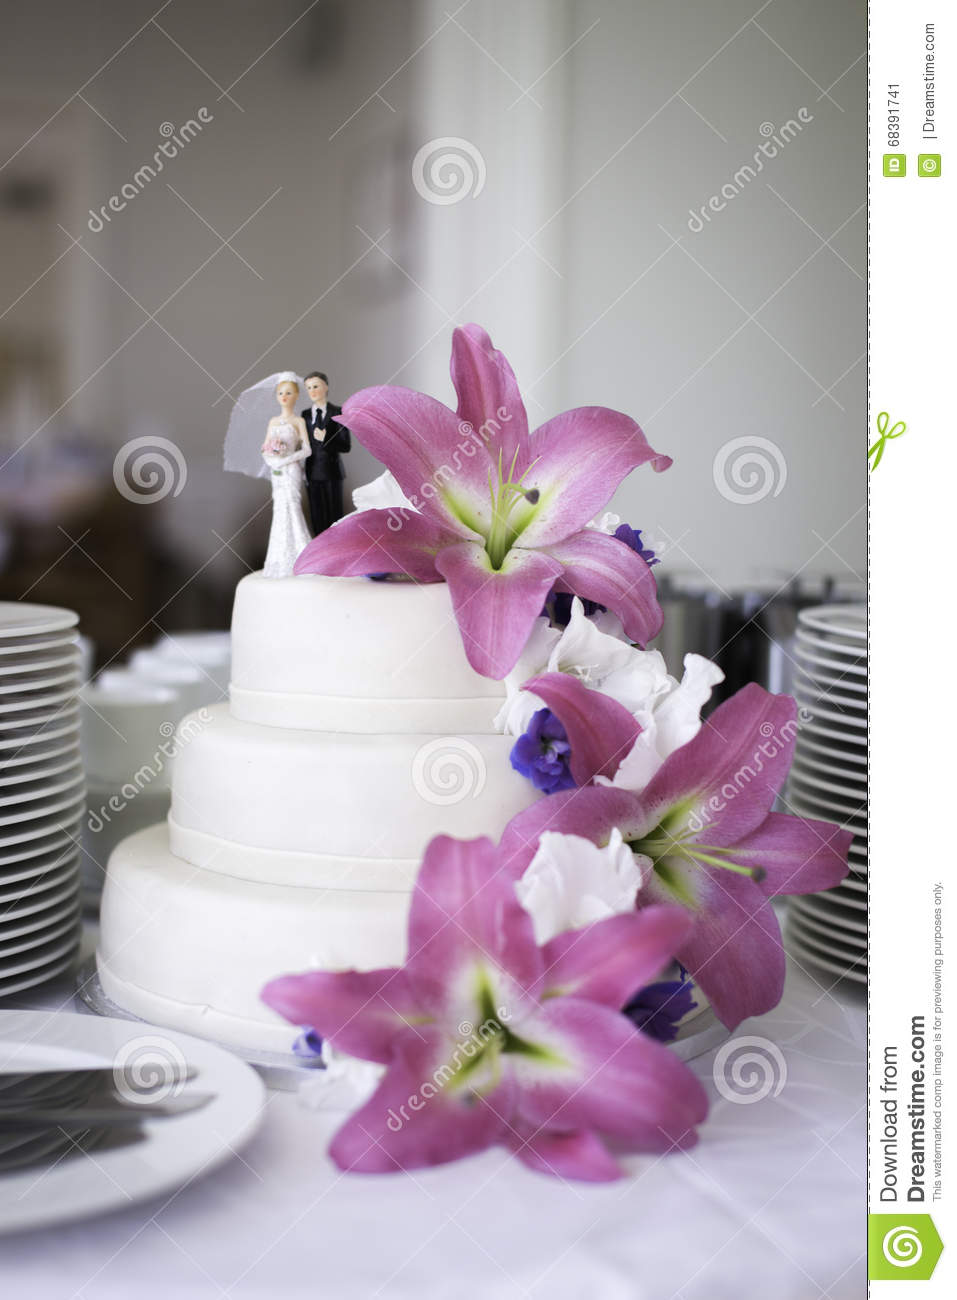 Wedding Cake With Pink Flowers Stock Image - Image of bride ...